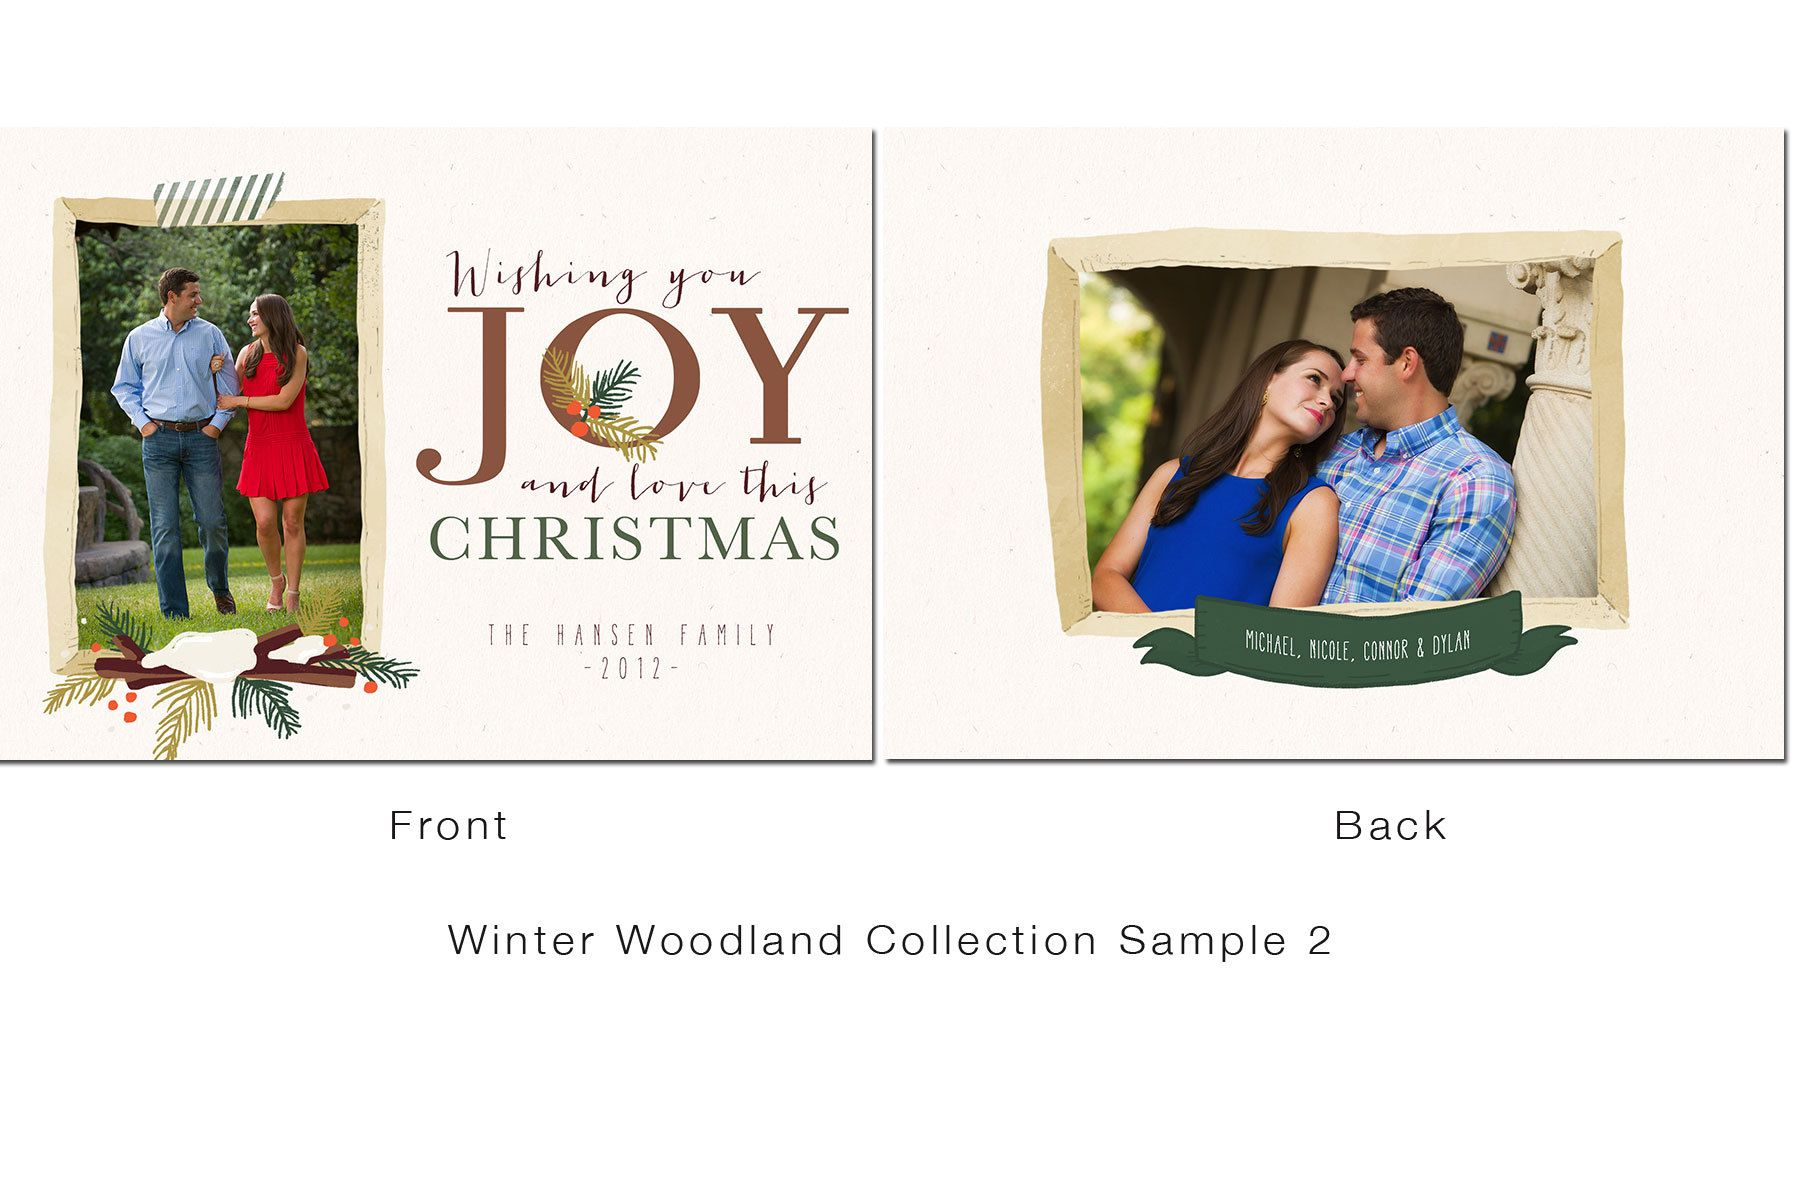 1winter_woodland_collection_sample_2.jpg